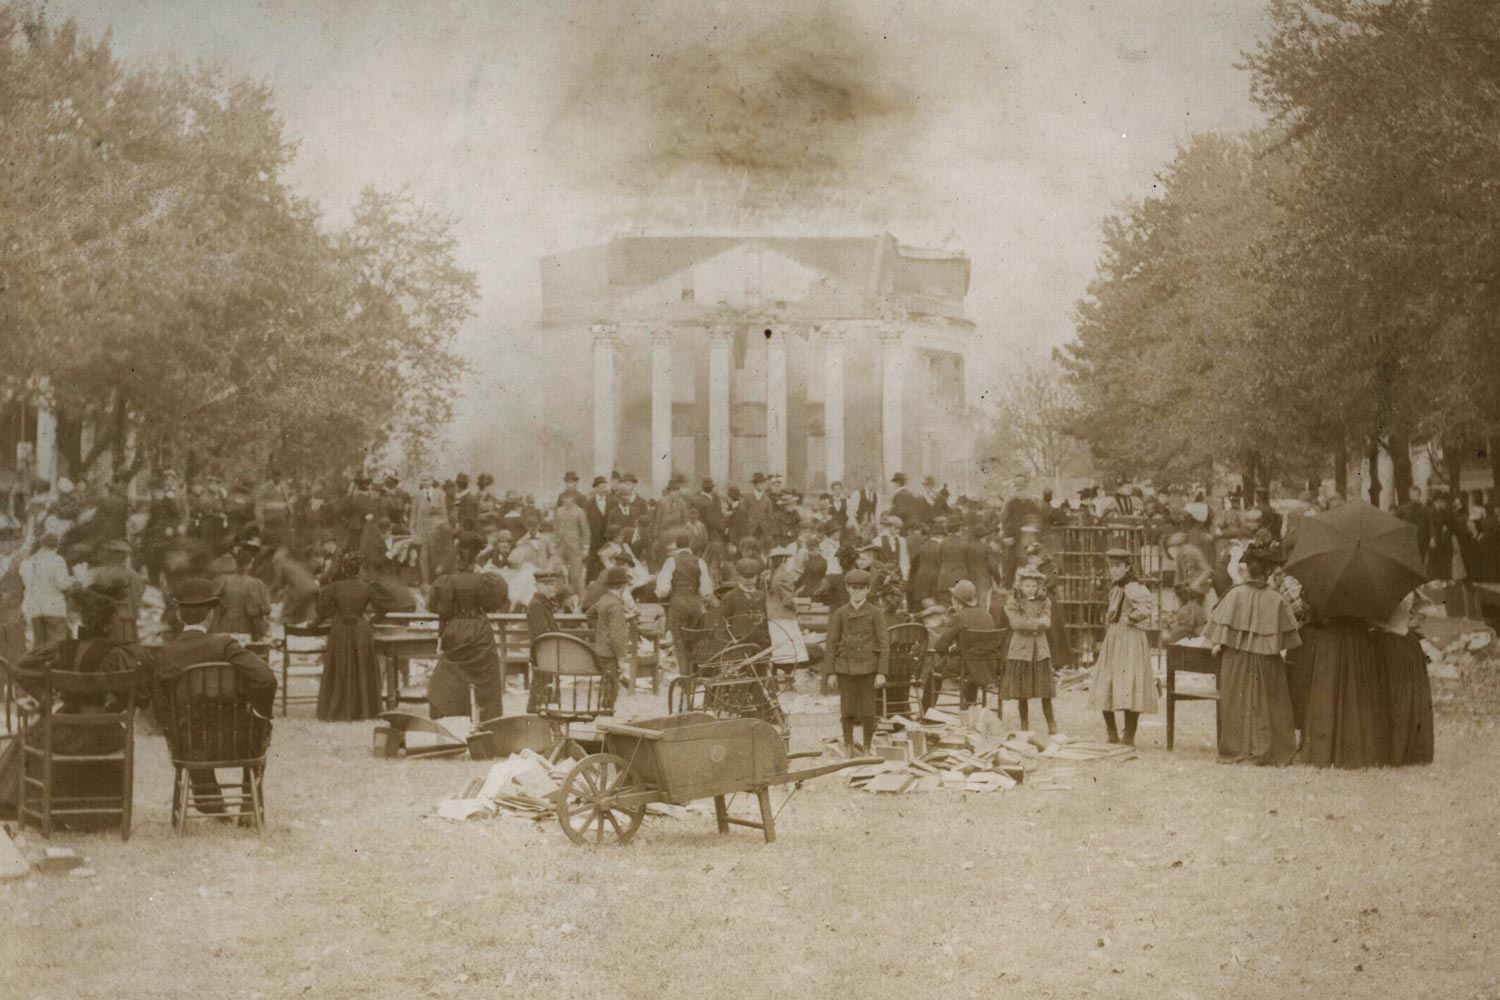 Faulty wiring was blamed for an October 27, 1895 fire that almost destroyed the Rotunda in its entirety.